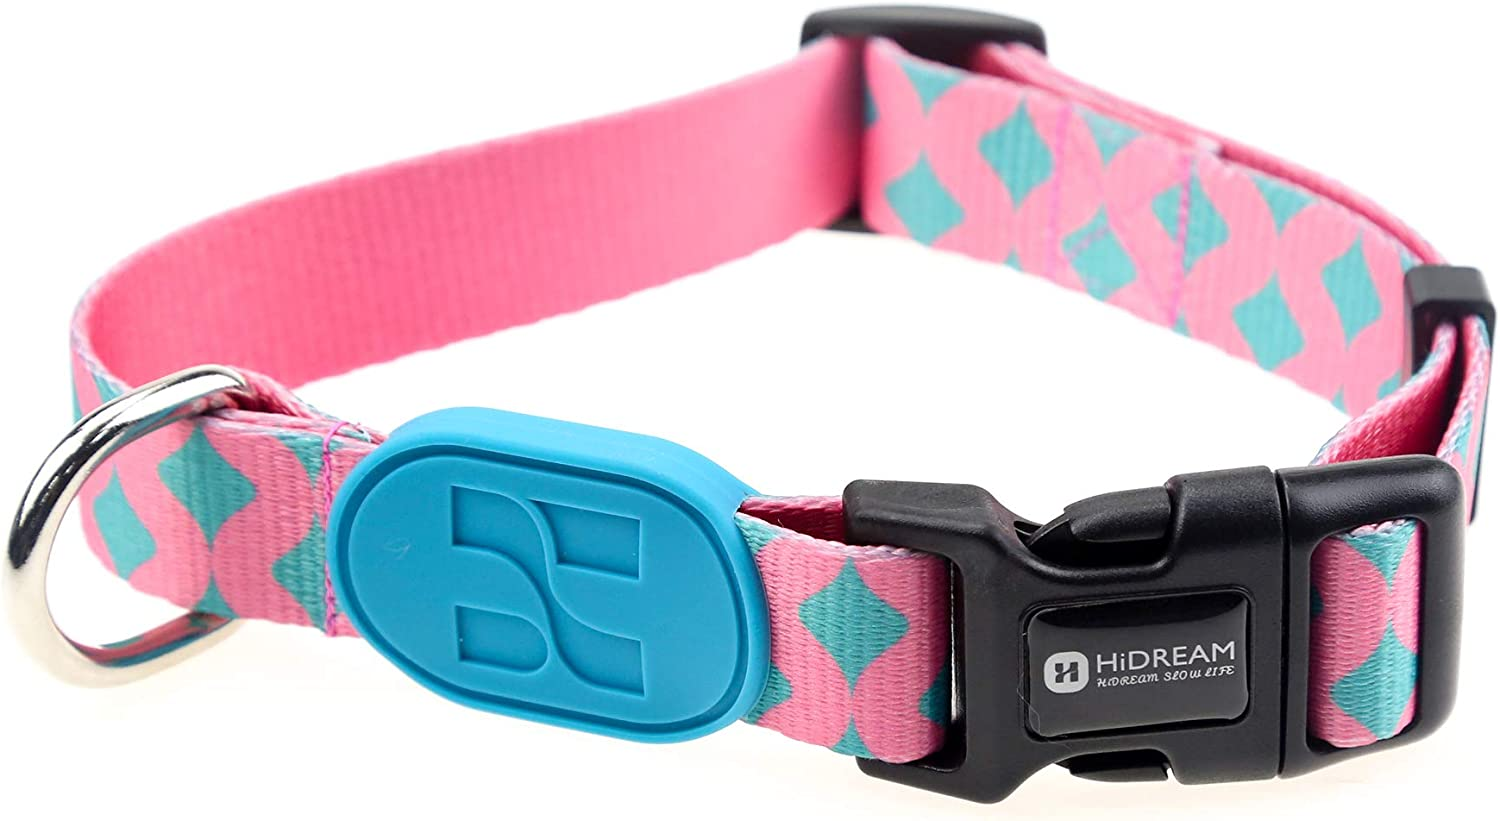 HiDREAM Profusion Series Dog Collars (Bobby, L) Pink Dog Collars Large Girl Dogs. Adjustable Heavy Duty Nylon Dog Collars